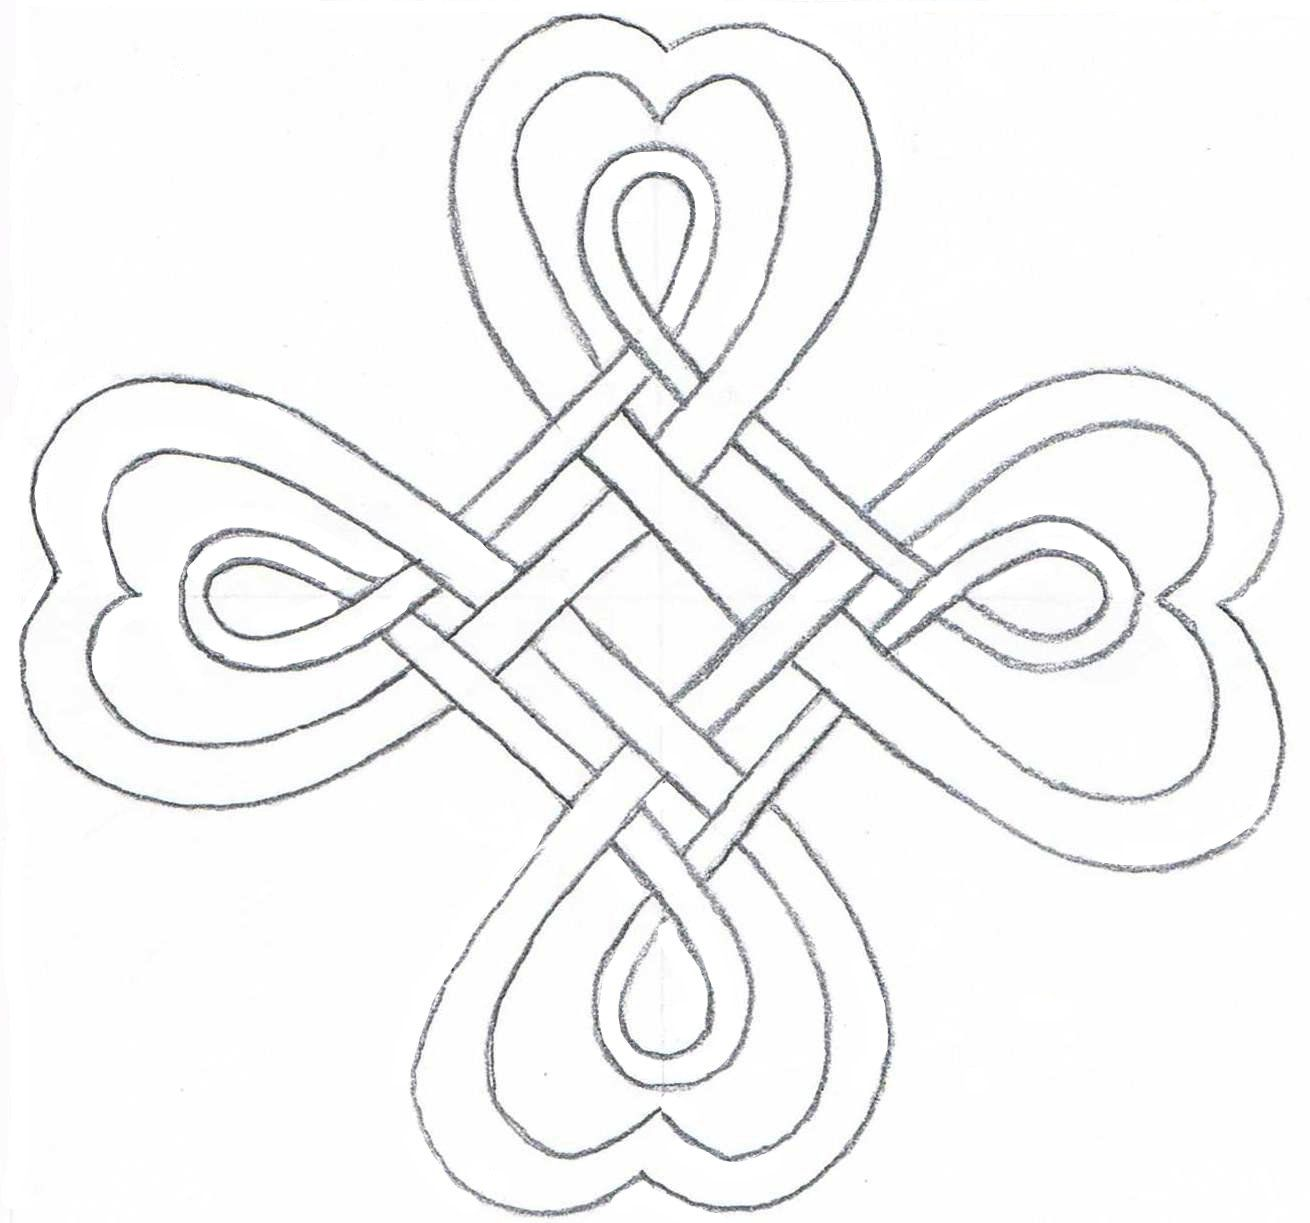 CloverFree printable coloring clovers | Your Celtic Four Leaf Clover ...